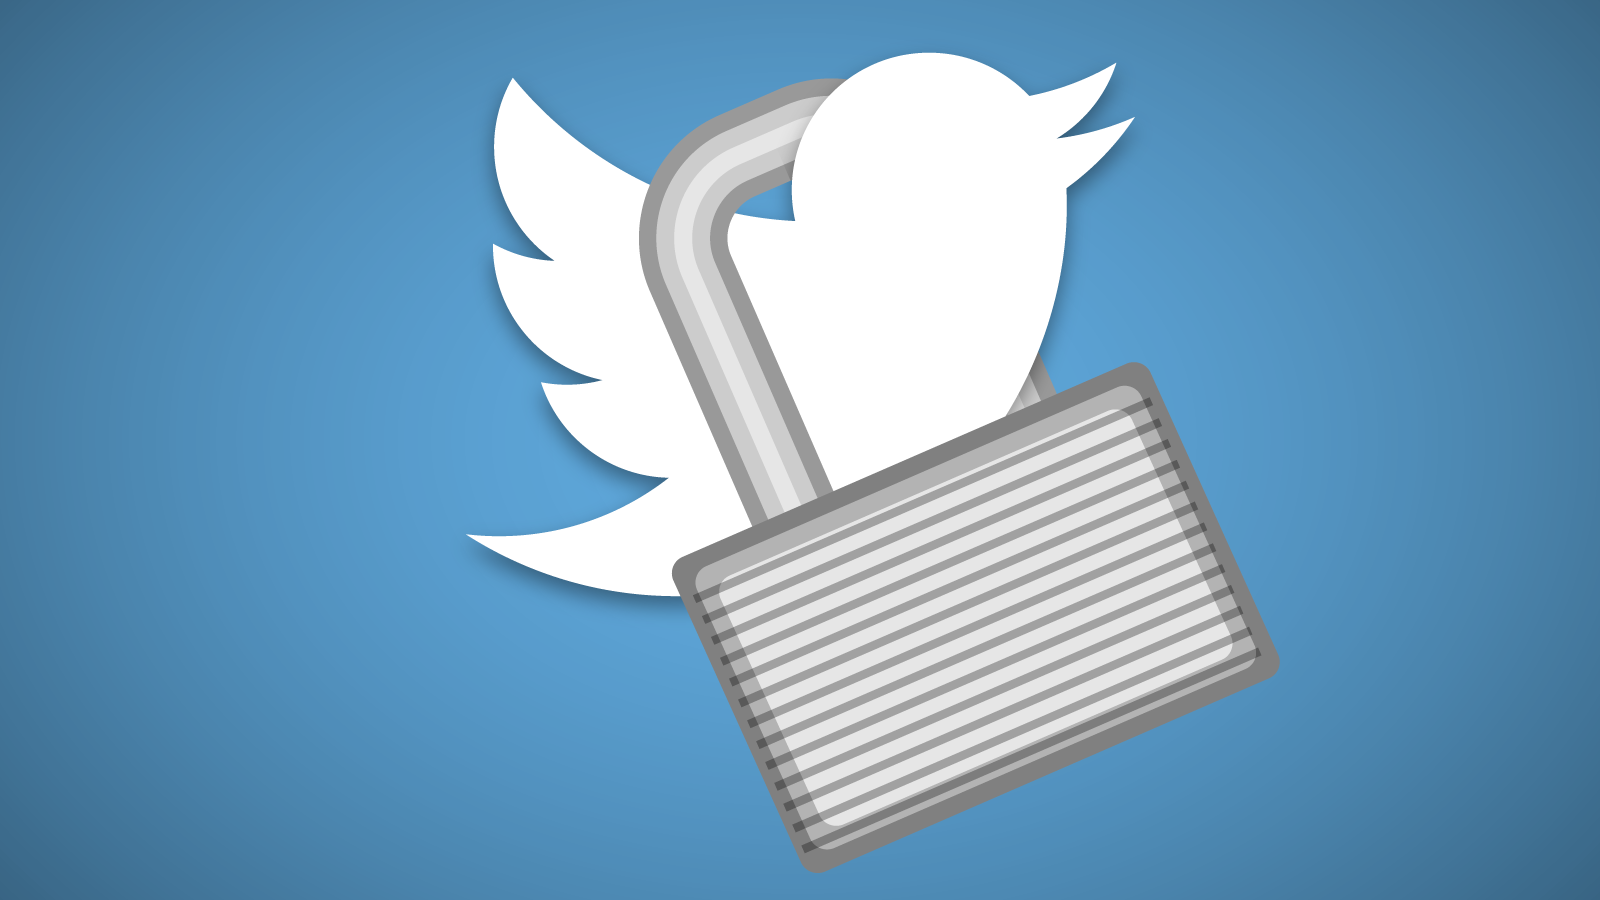 Twitter to soon launch an encrypted messaging feature